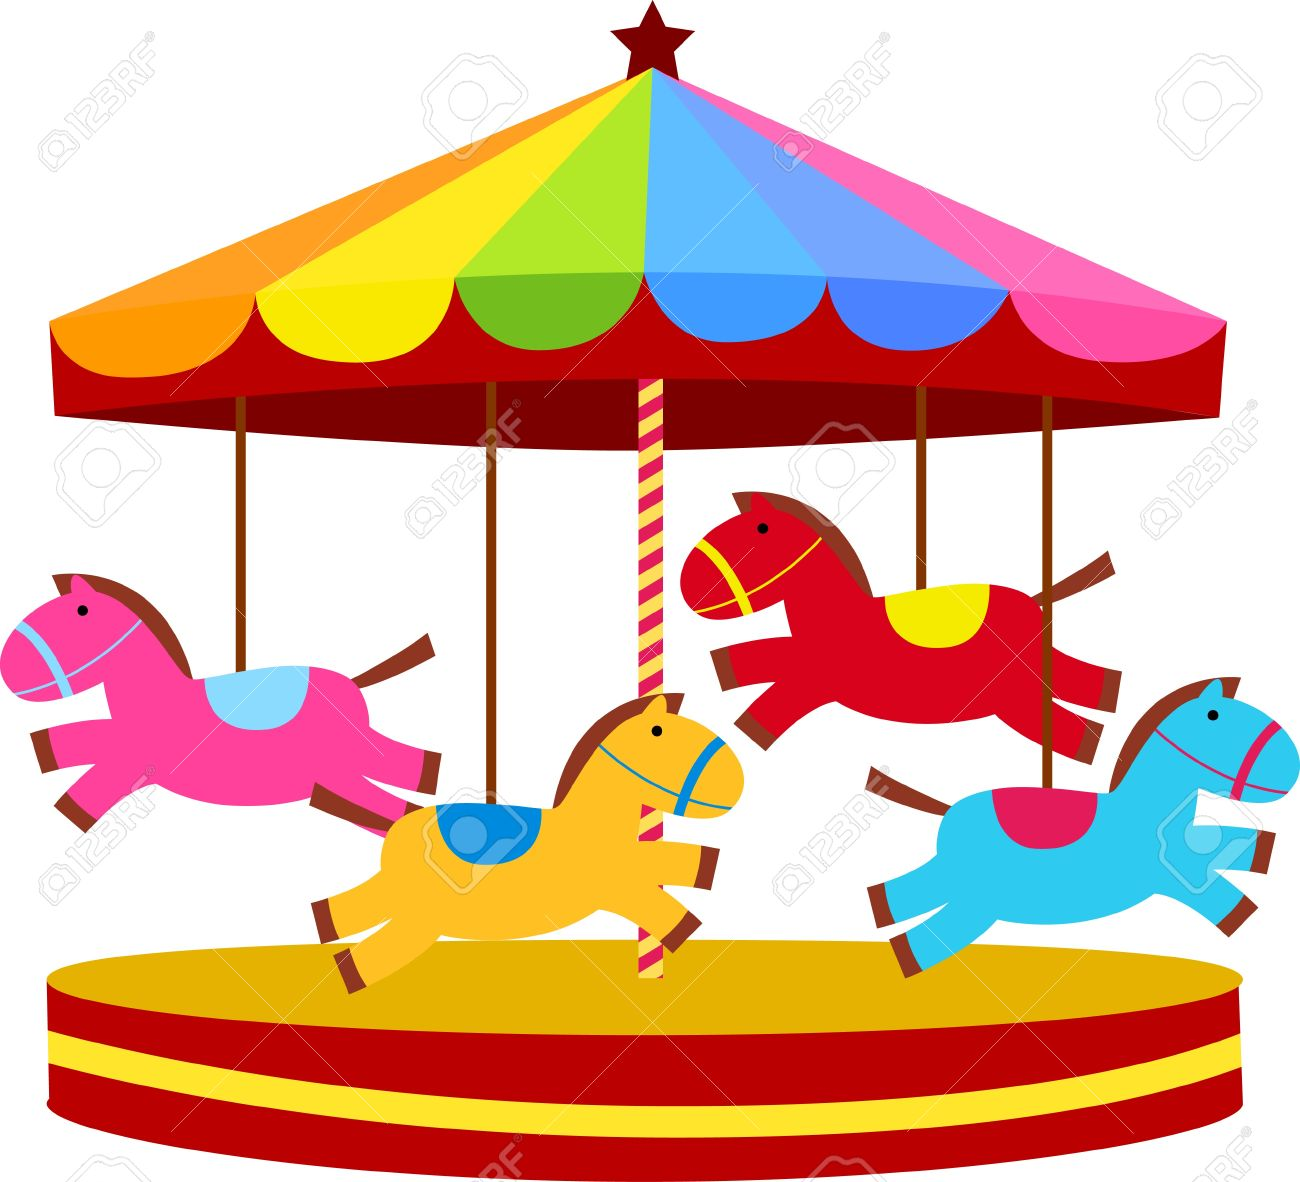 Carousel clipart 1 » Clipart Station.